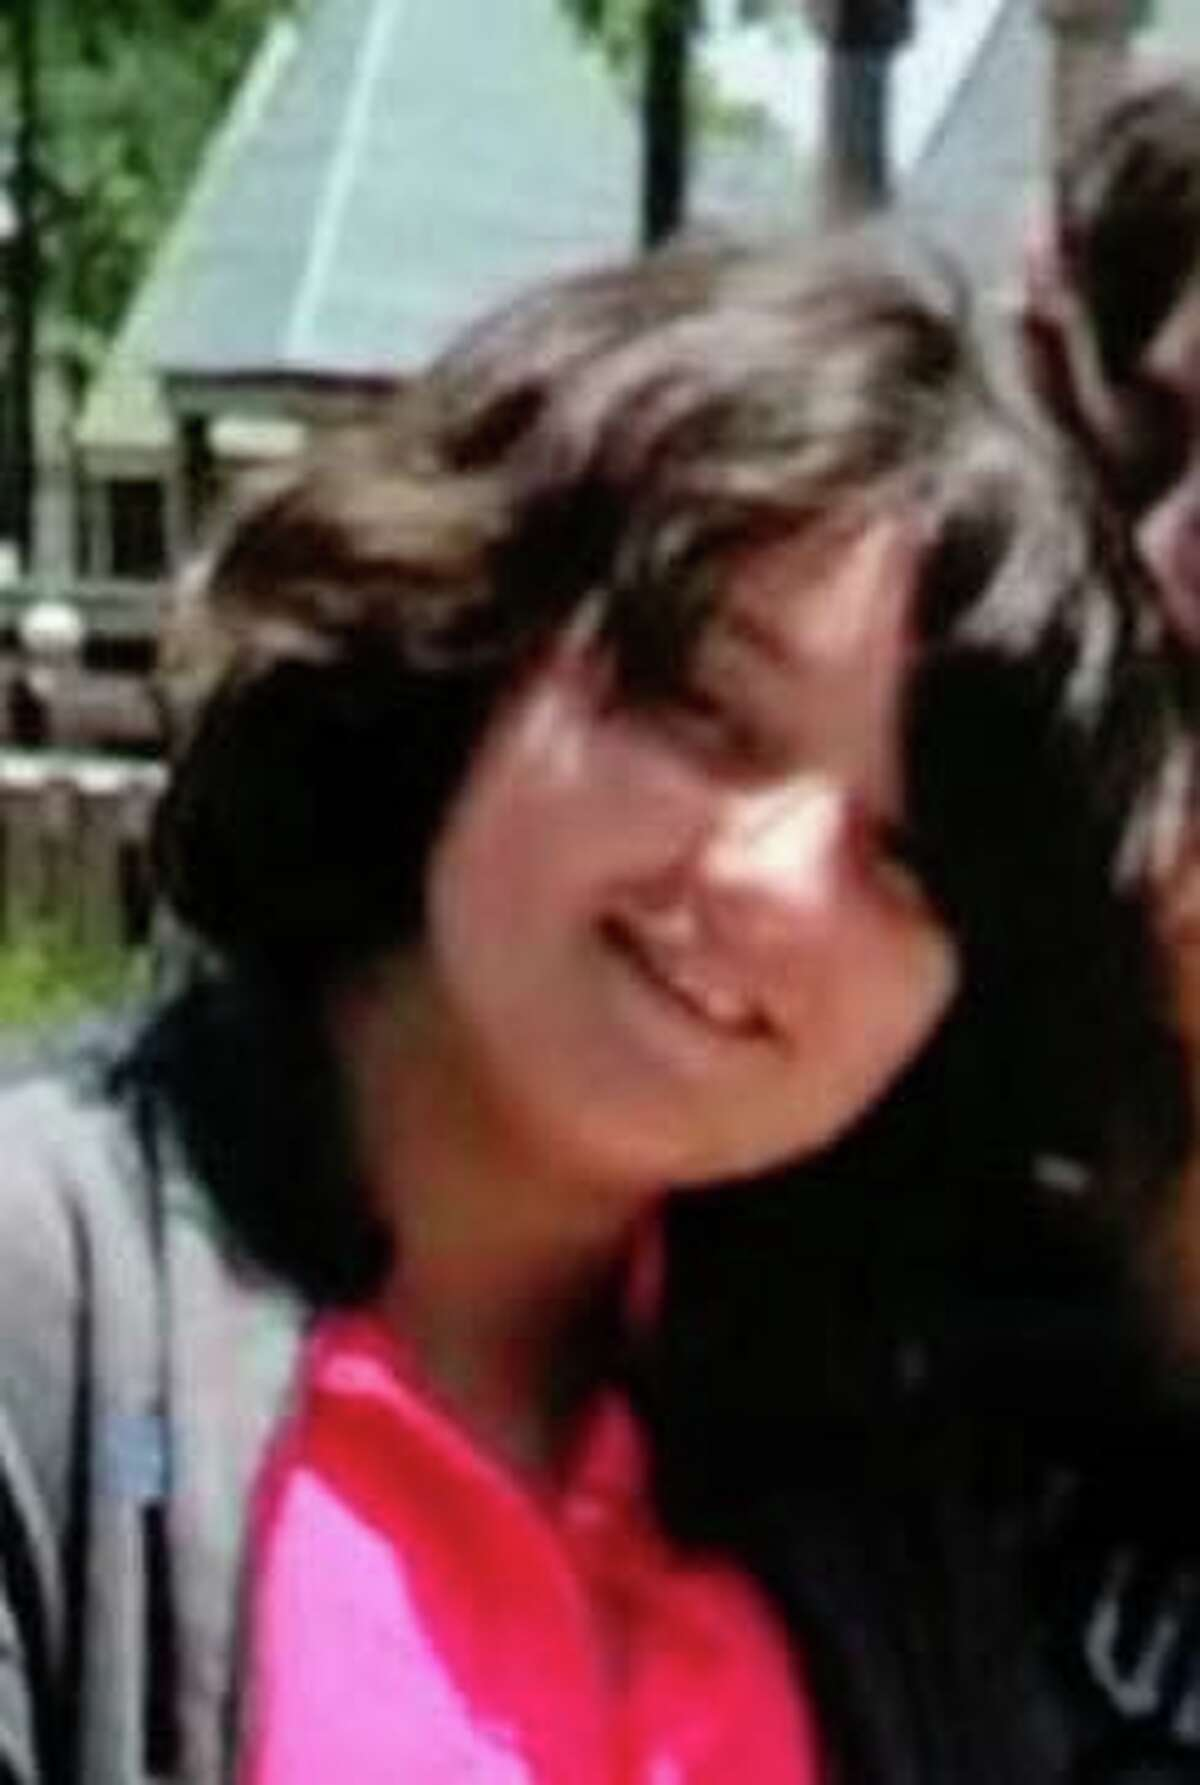 Lily Bonsal, 11, has been reported missing in Deer Park.